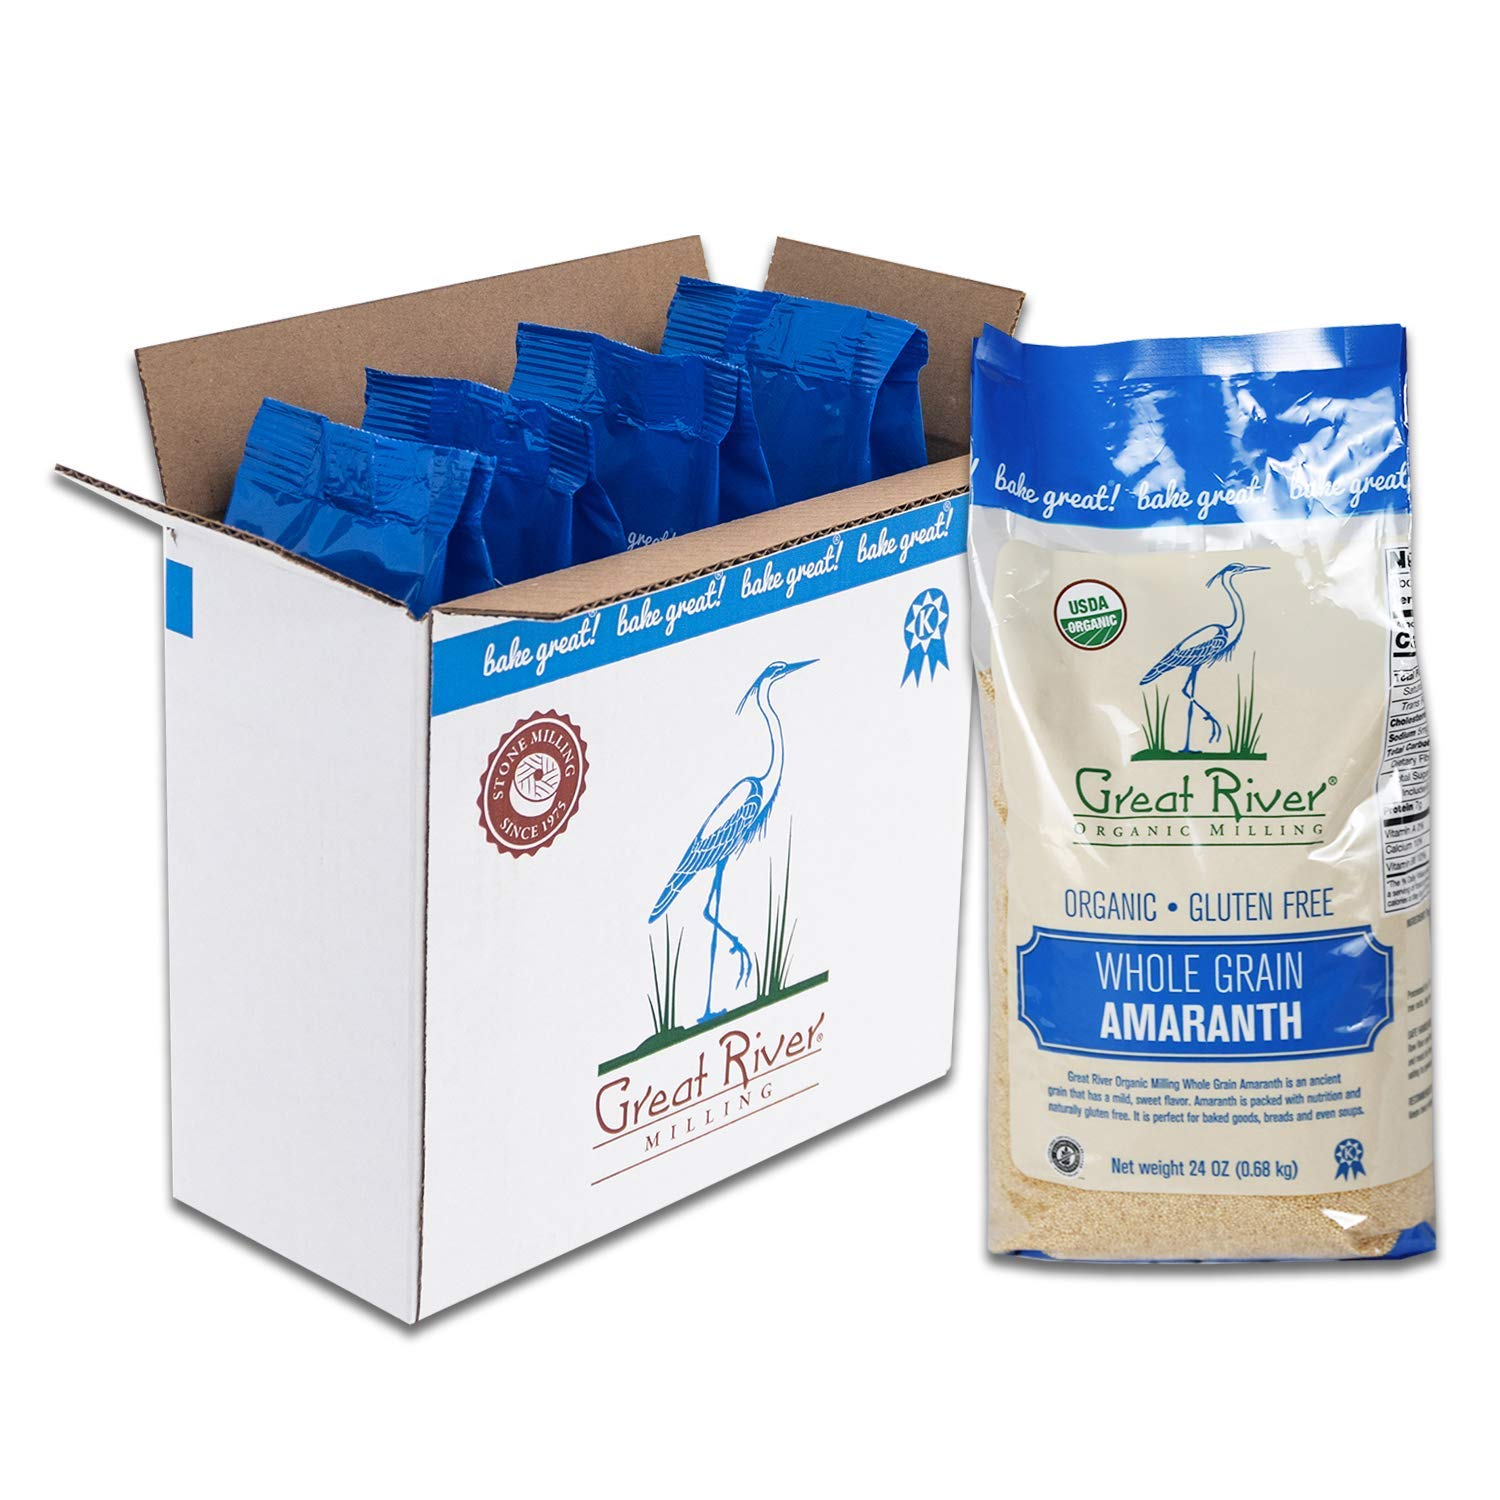 Great River Organic Milling, Whole Grain, Amaranth, Gluten Free, Organic, 24 Ounces (Pack of 4)